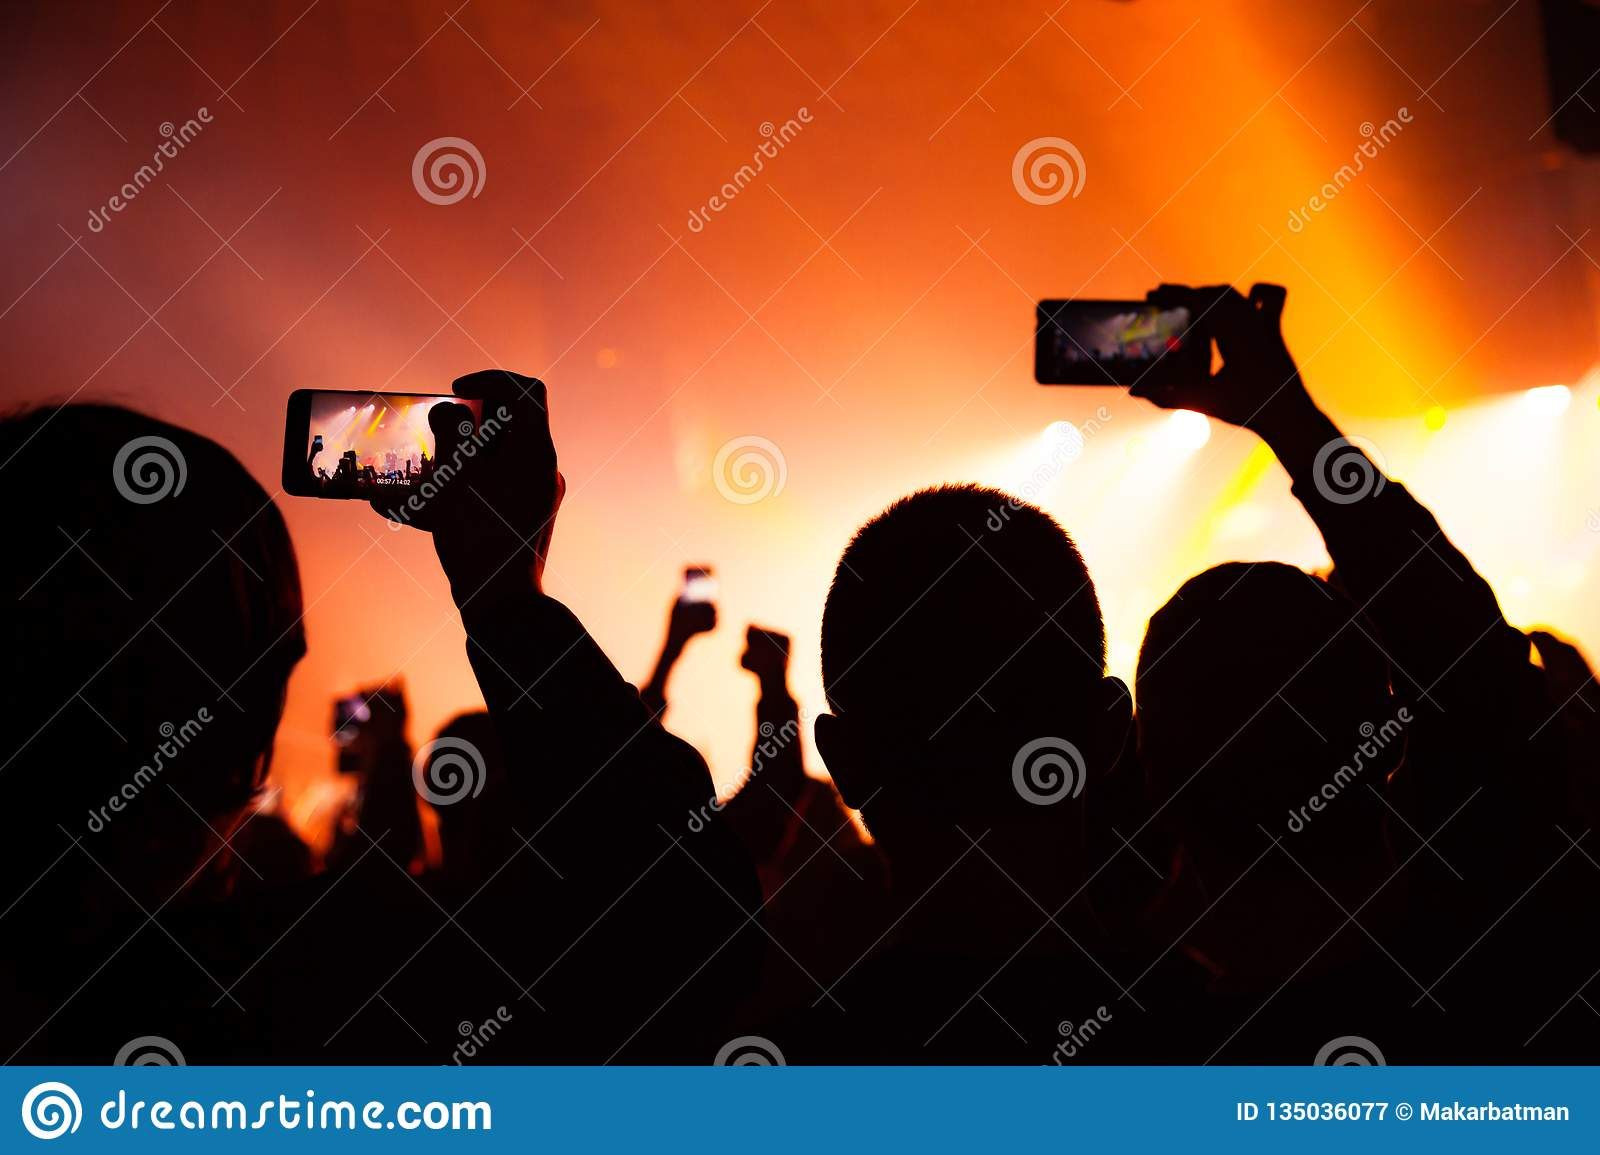 People watching a concert and someone shooting photo and video with a cellphone